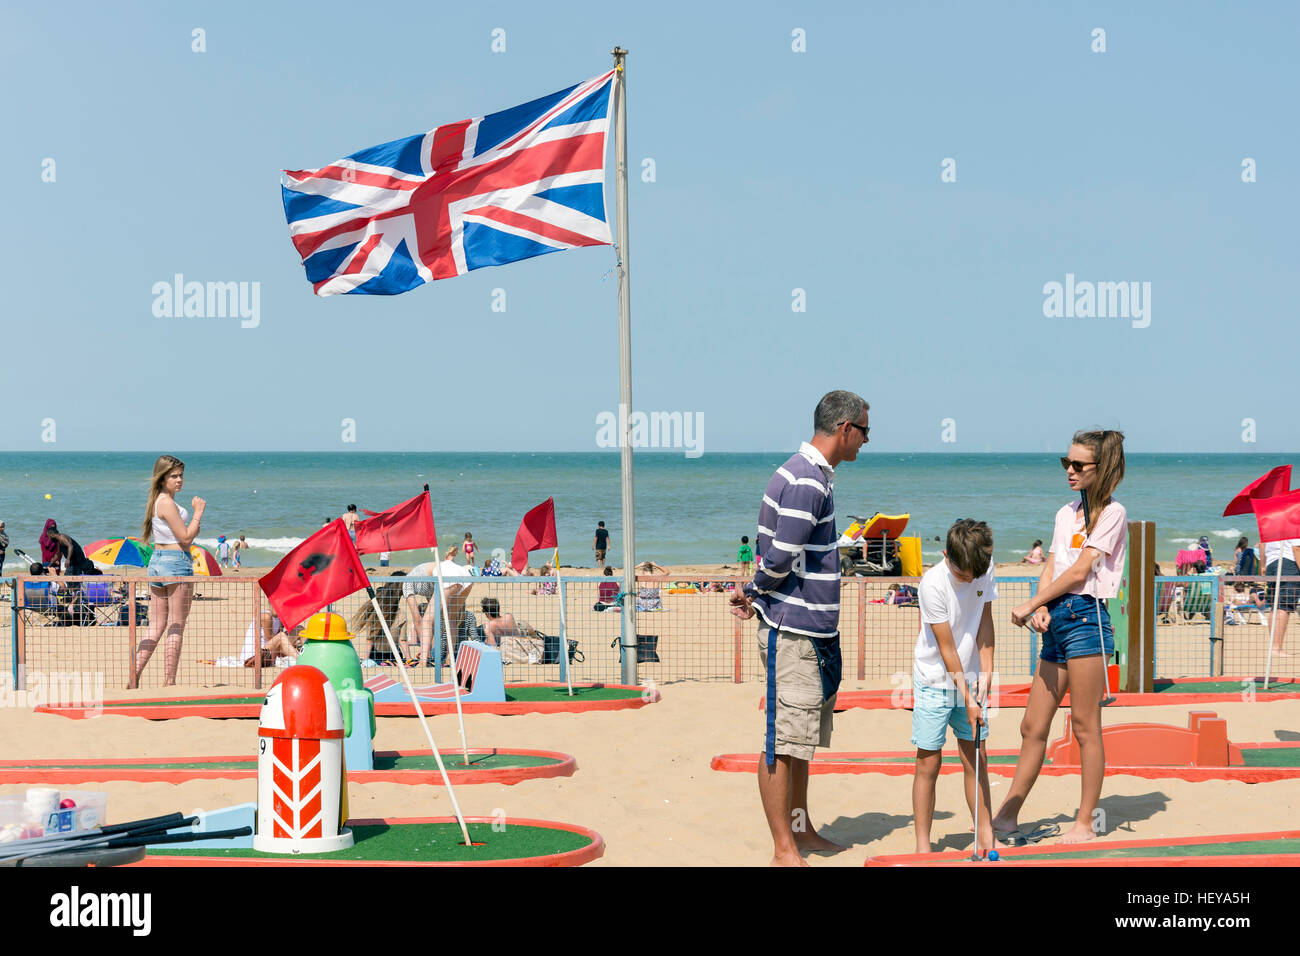 Family playing crazy golf on Margate Beach, Margate, Kent, England, United Kingdom - Stock Image